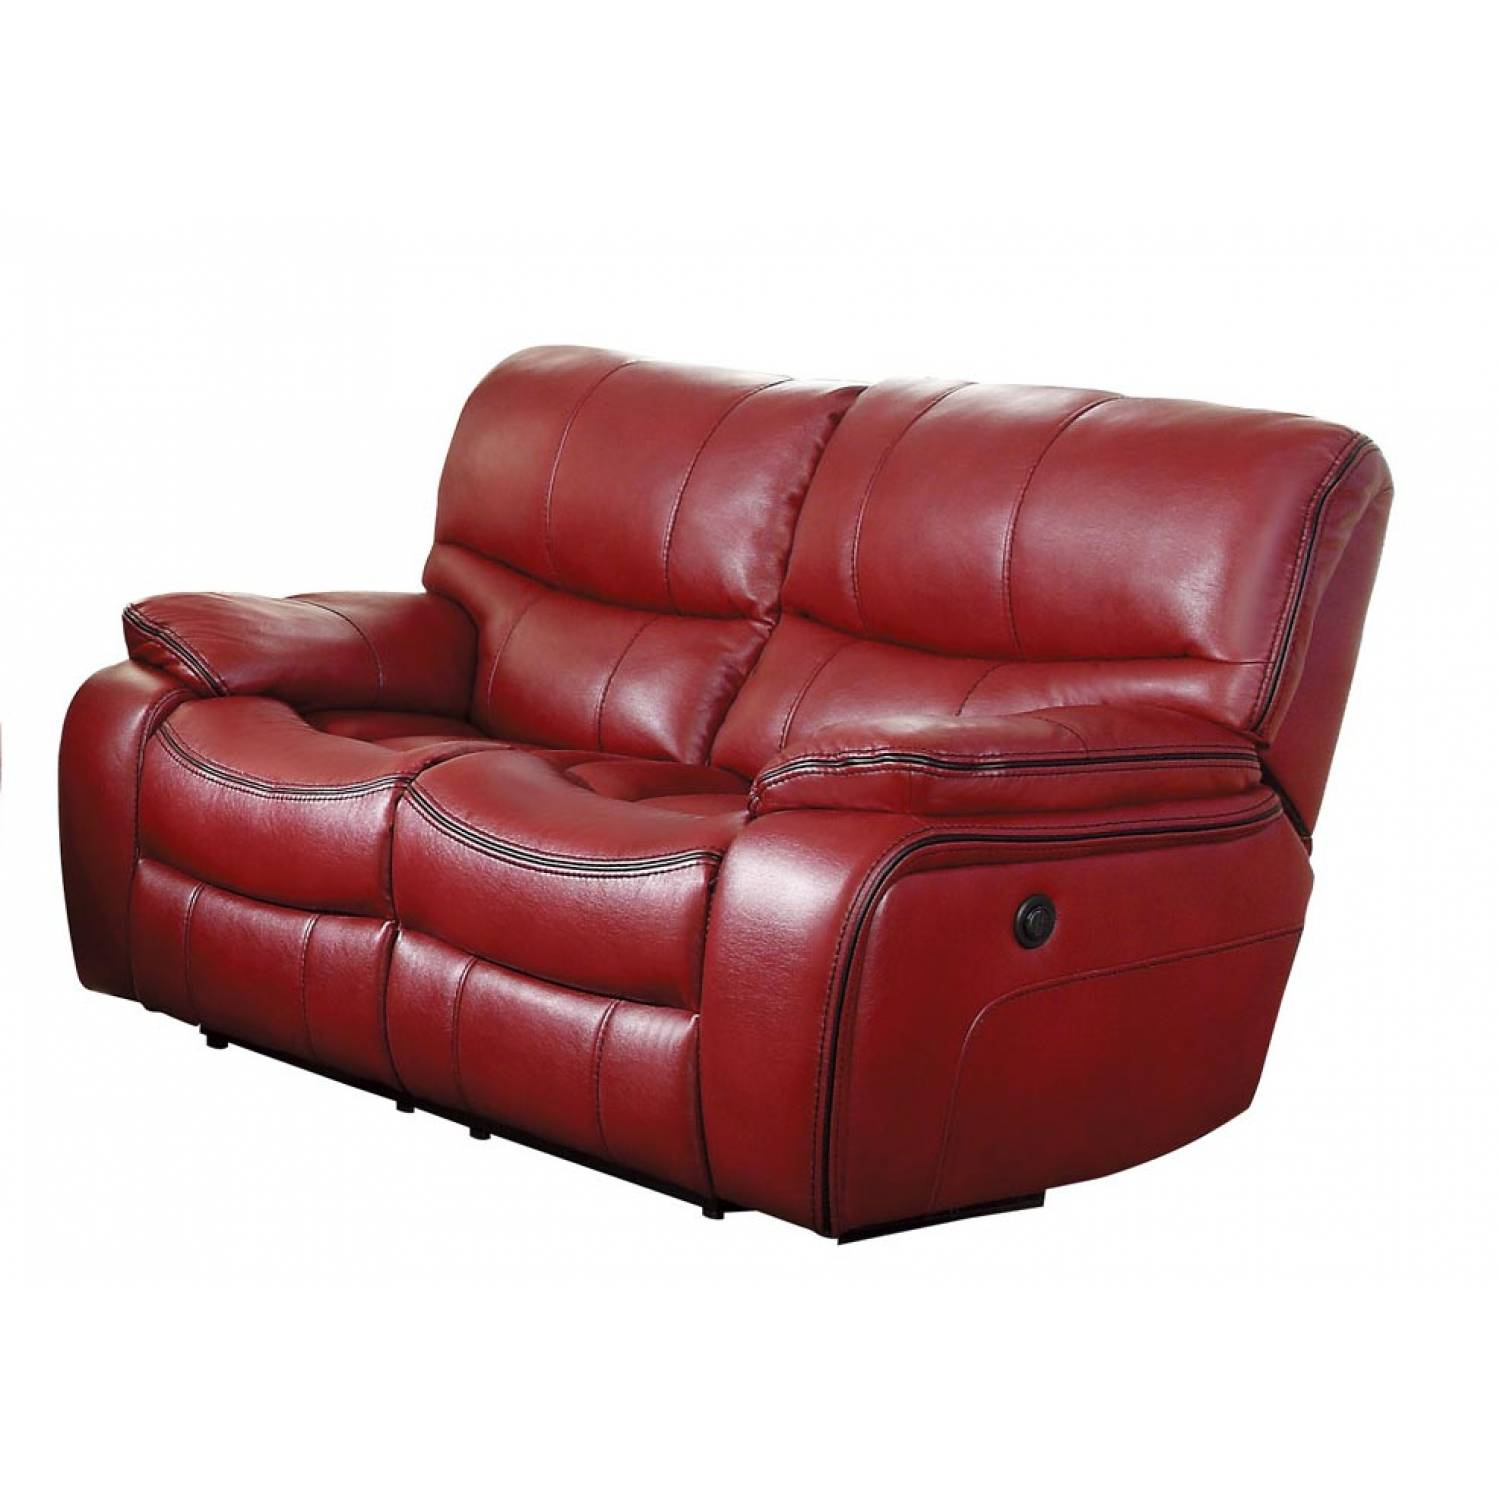 Double Recliner Chair Pecos Power Double Reclining Love Seat Leather Gel Match Red